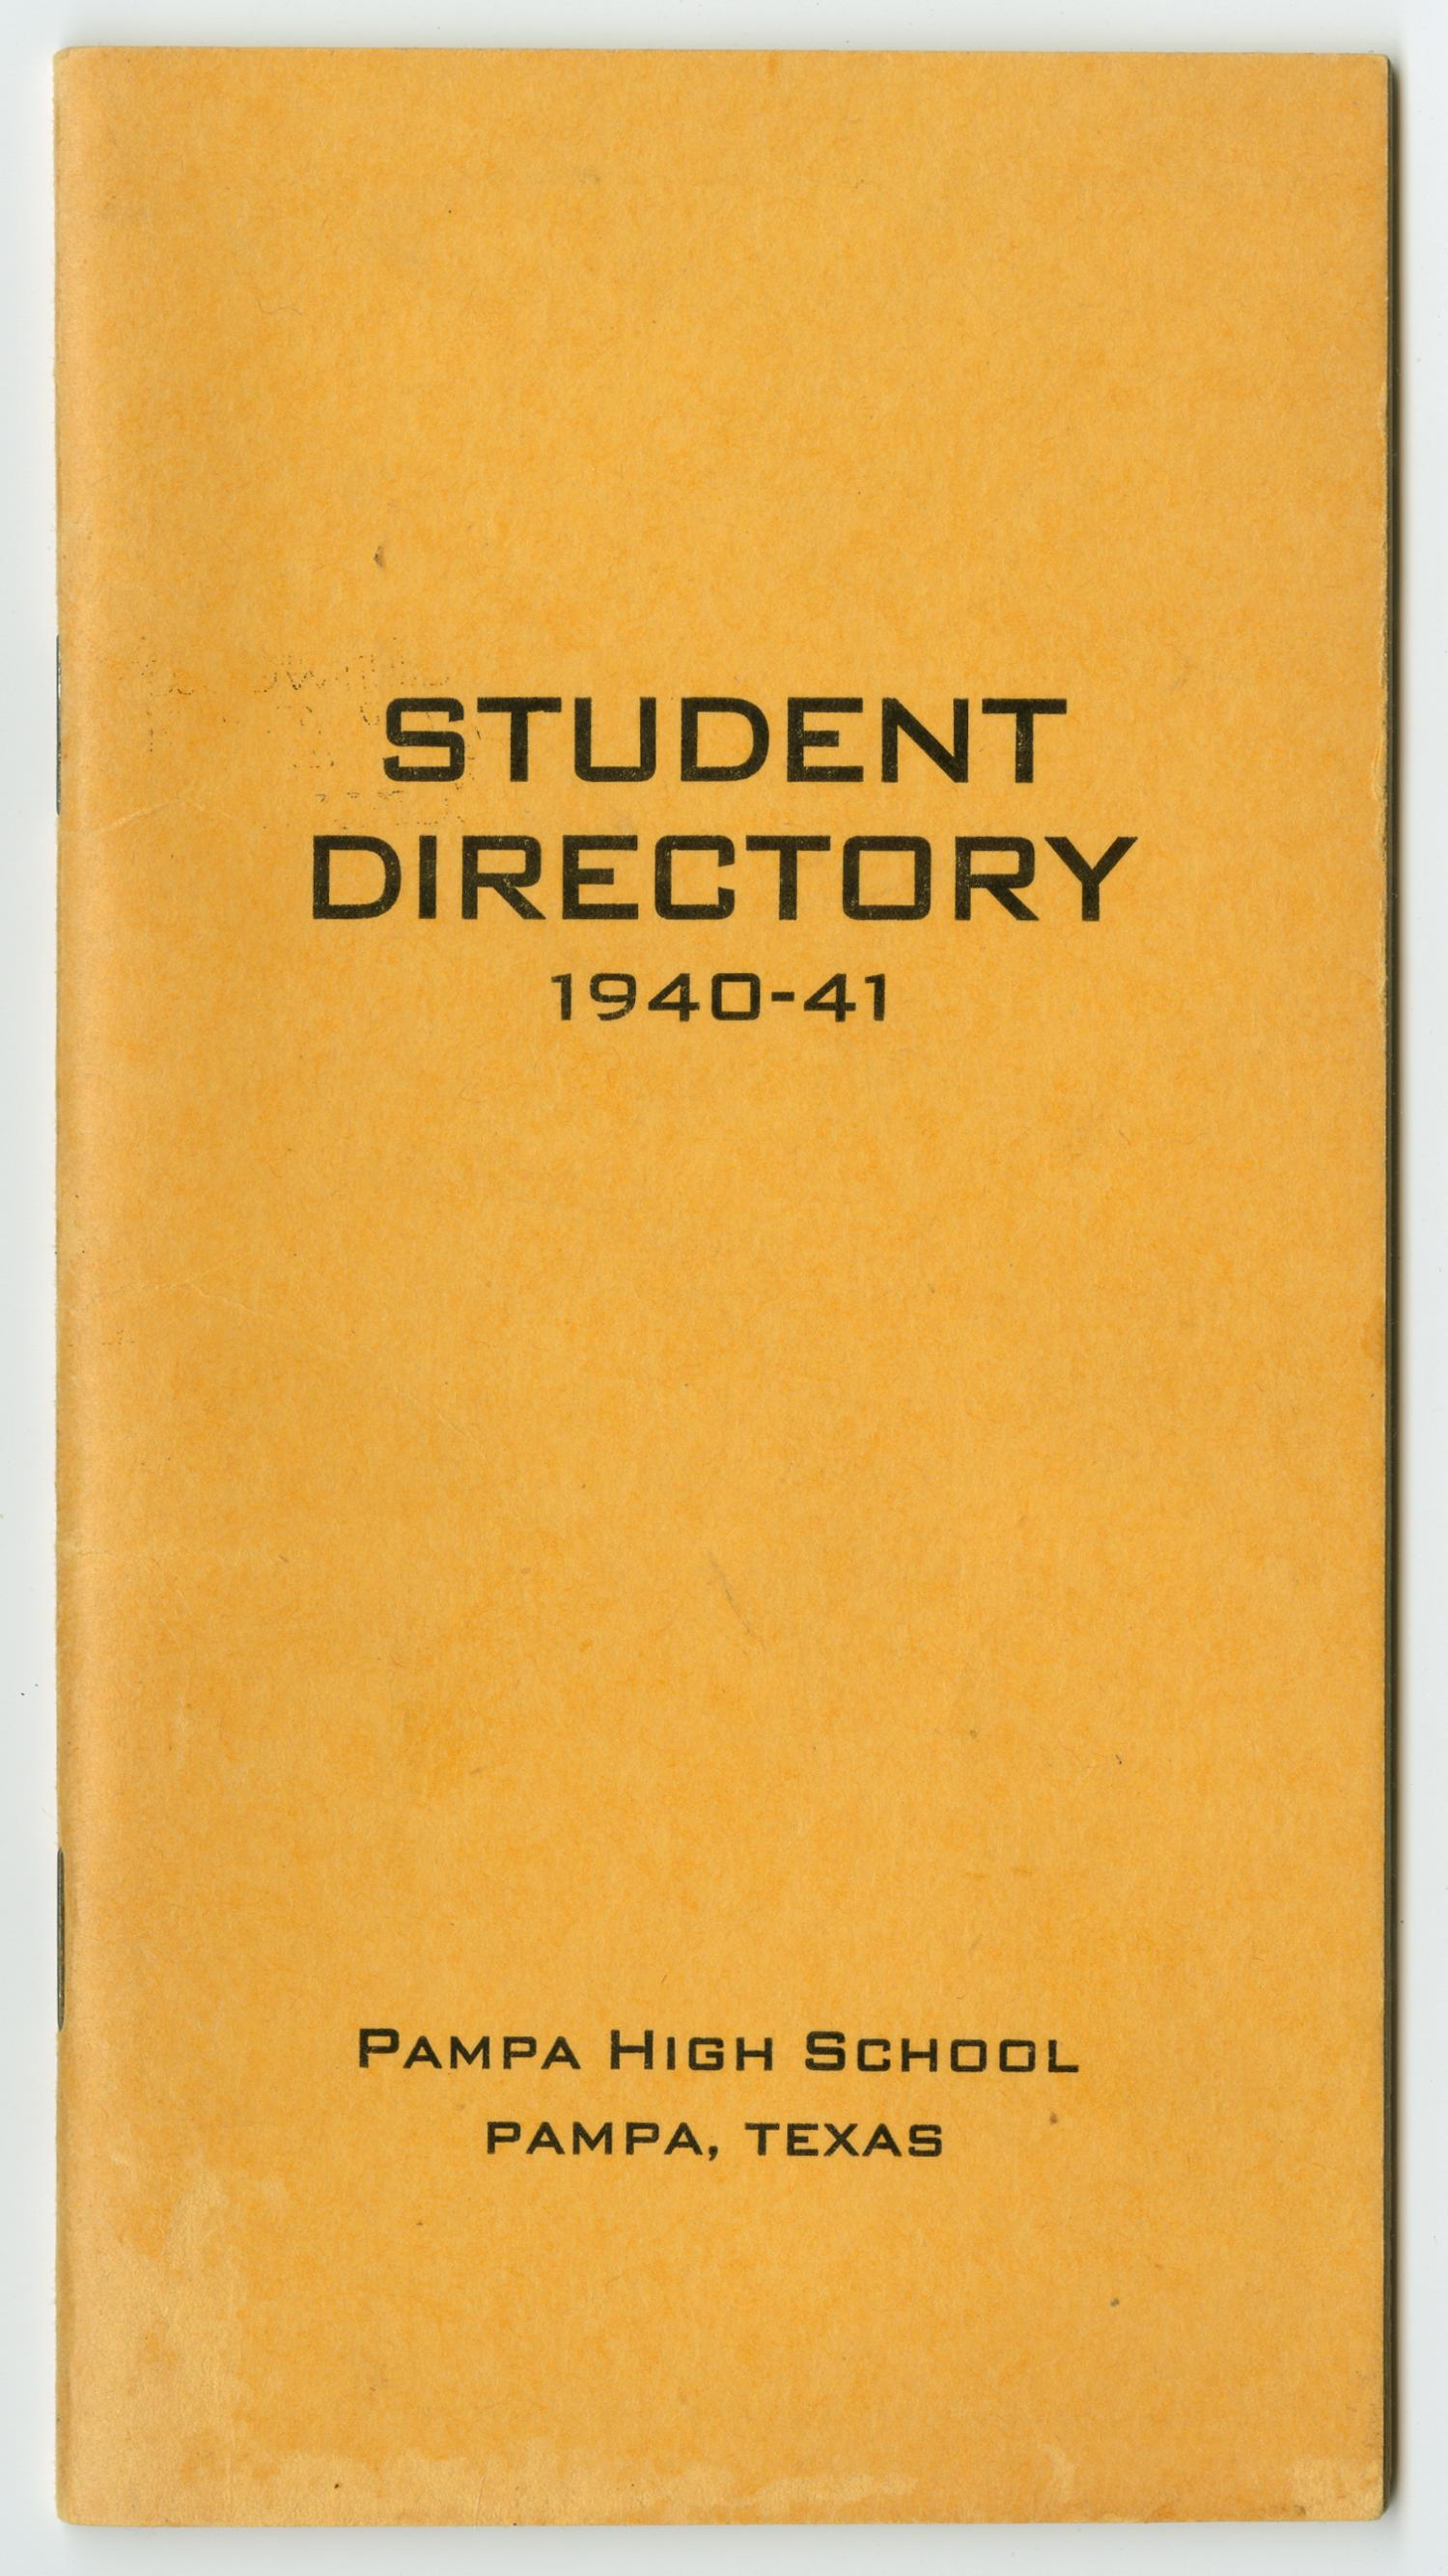 [Pampa High School Student Directory, 1940-1941]                                                                                                      Front Cover